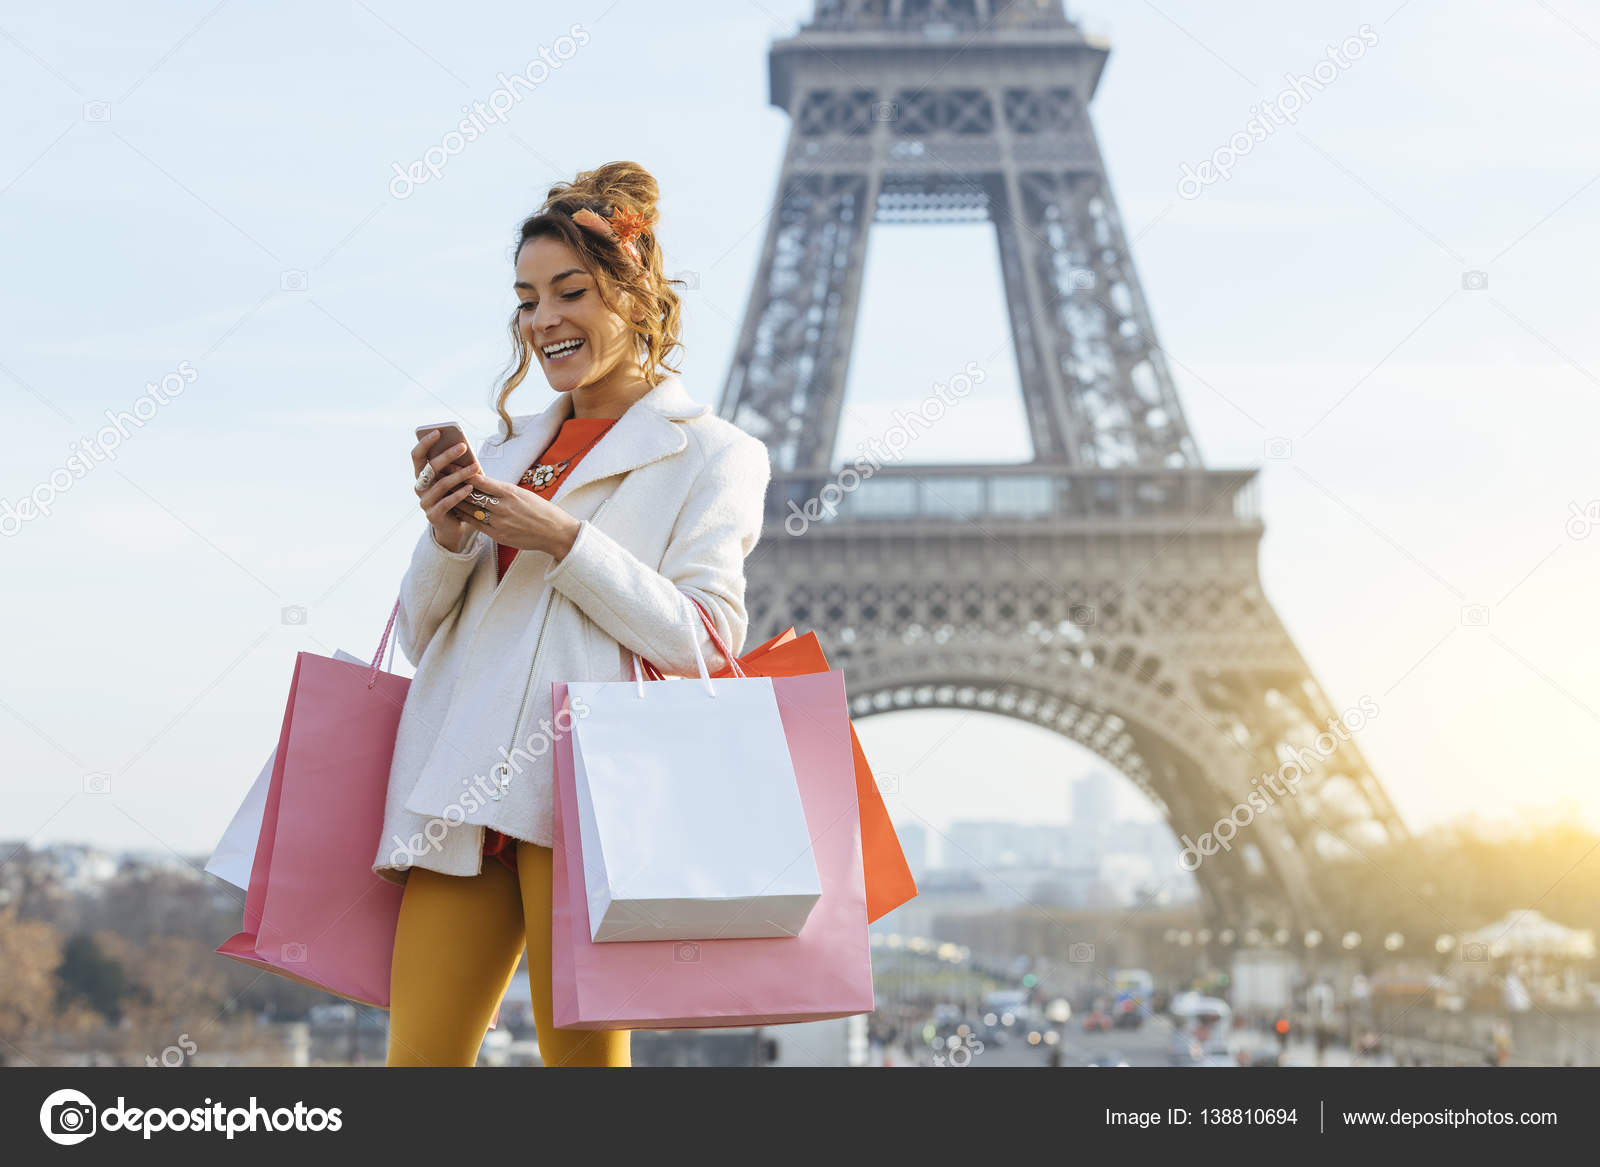 Shoppen In Parijs Jonge Vrouw Shoppen In Parijs Stockfoto S4visuals 138810694